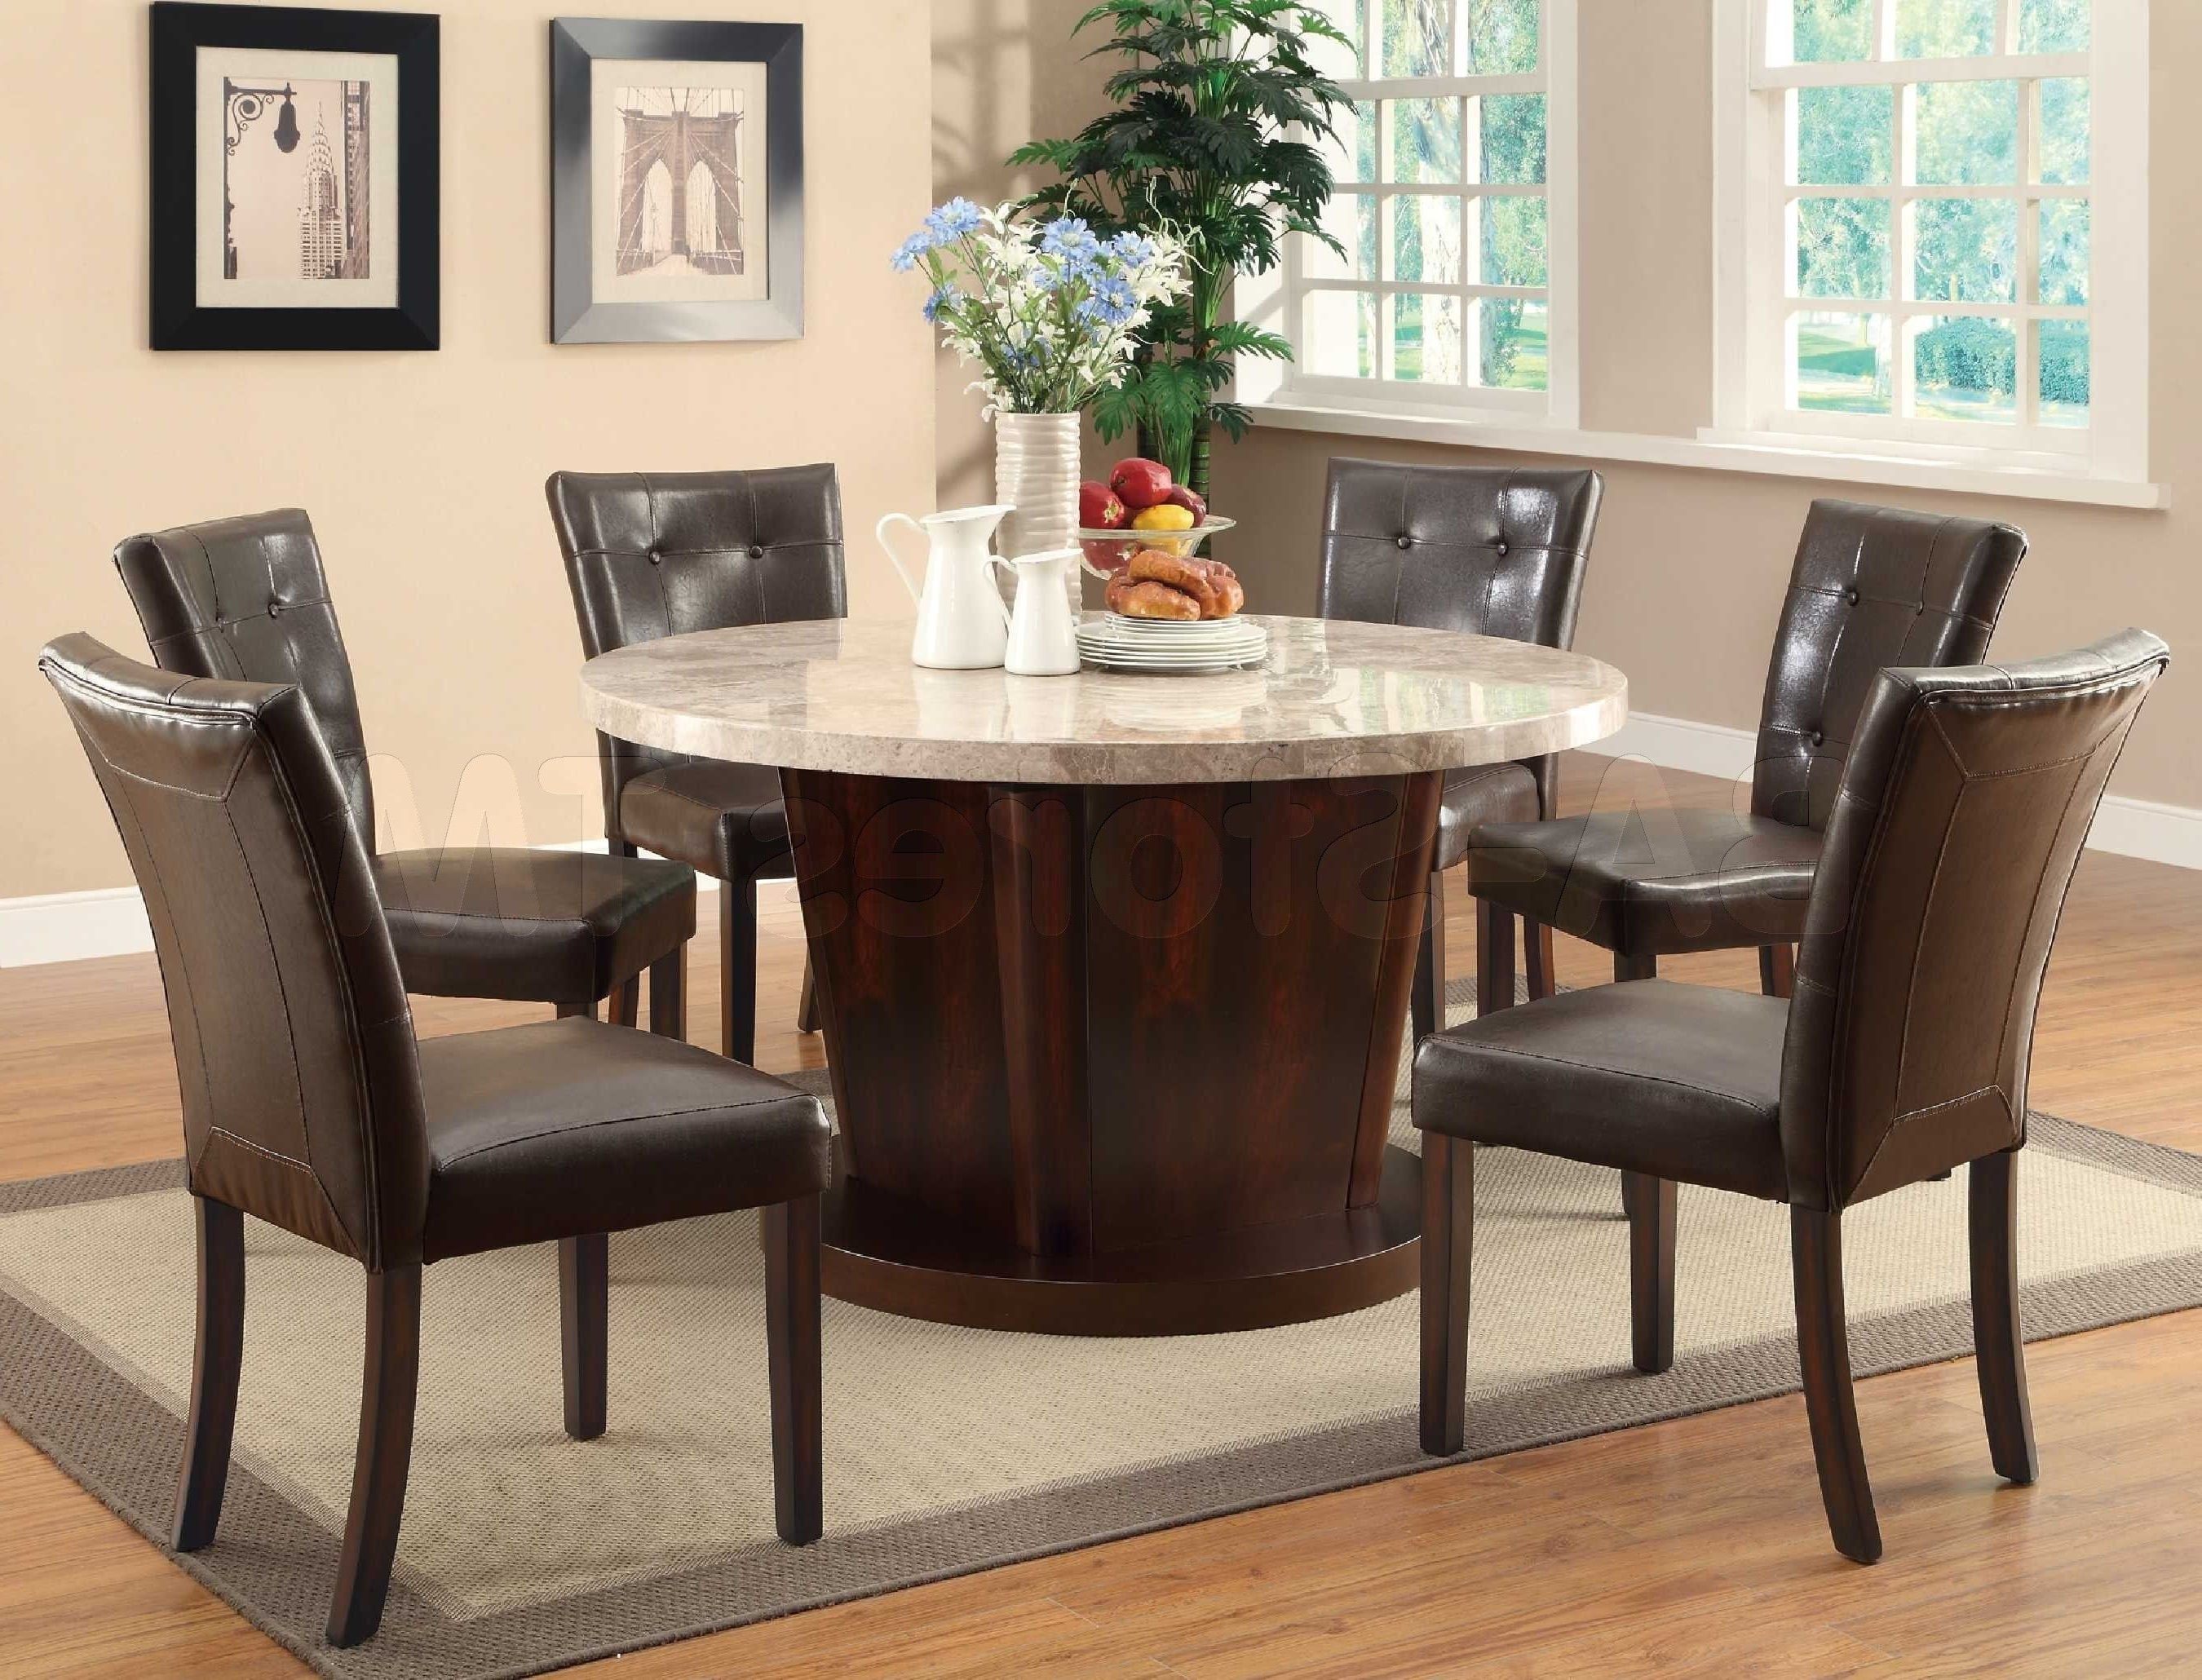 Norwood 6 Piece Rectangular Extension Dining Sets With Upholstered Side Chairs Intended For Best And Newest Low Cost Dining Room Tables (View 12 of 25)